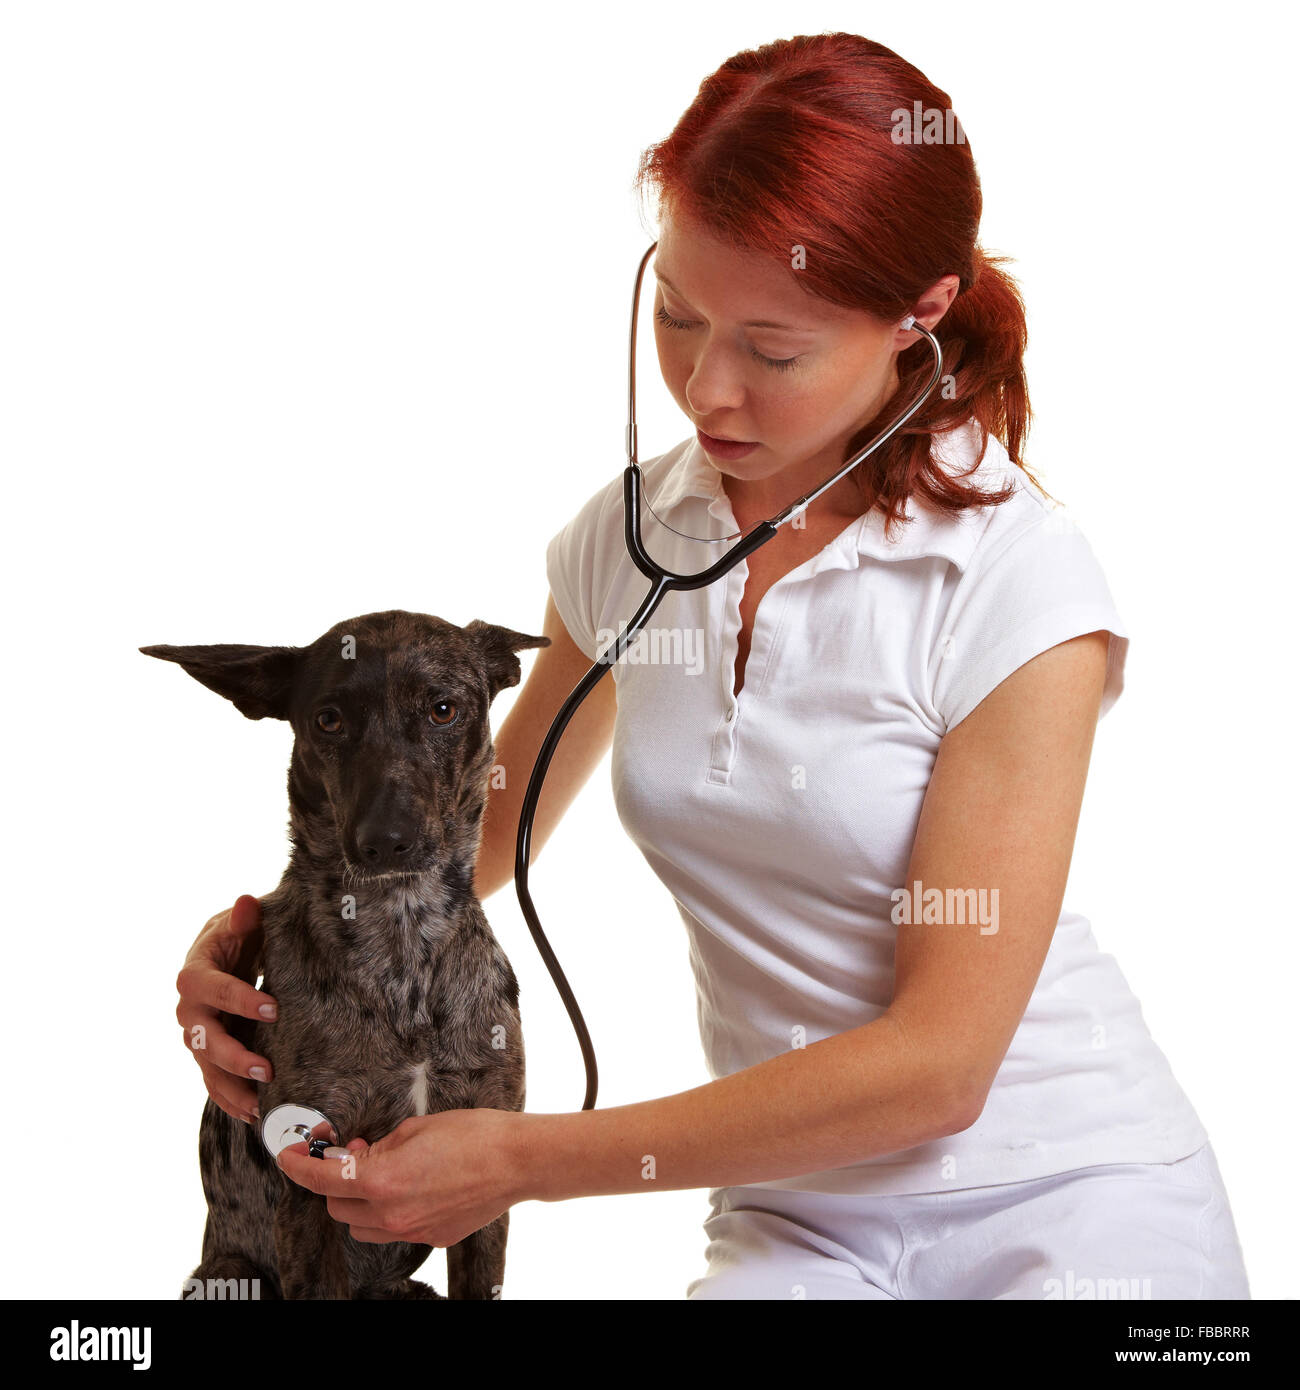 Female veterinarian using stethoscope on a crossbreed dog - Stock Image